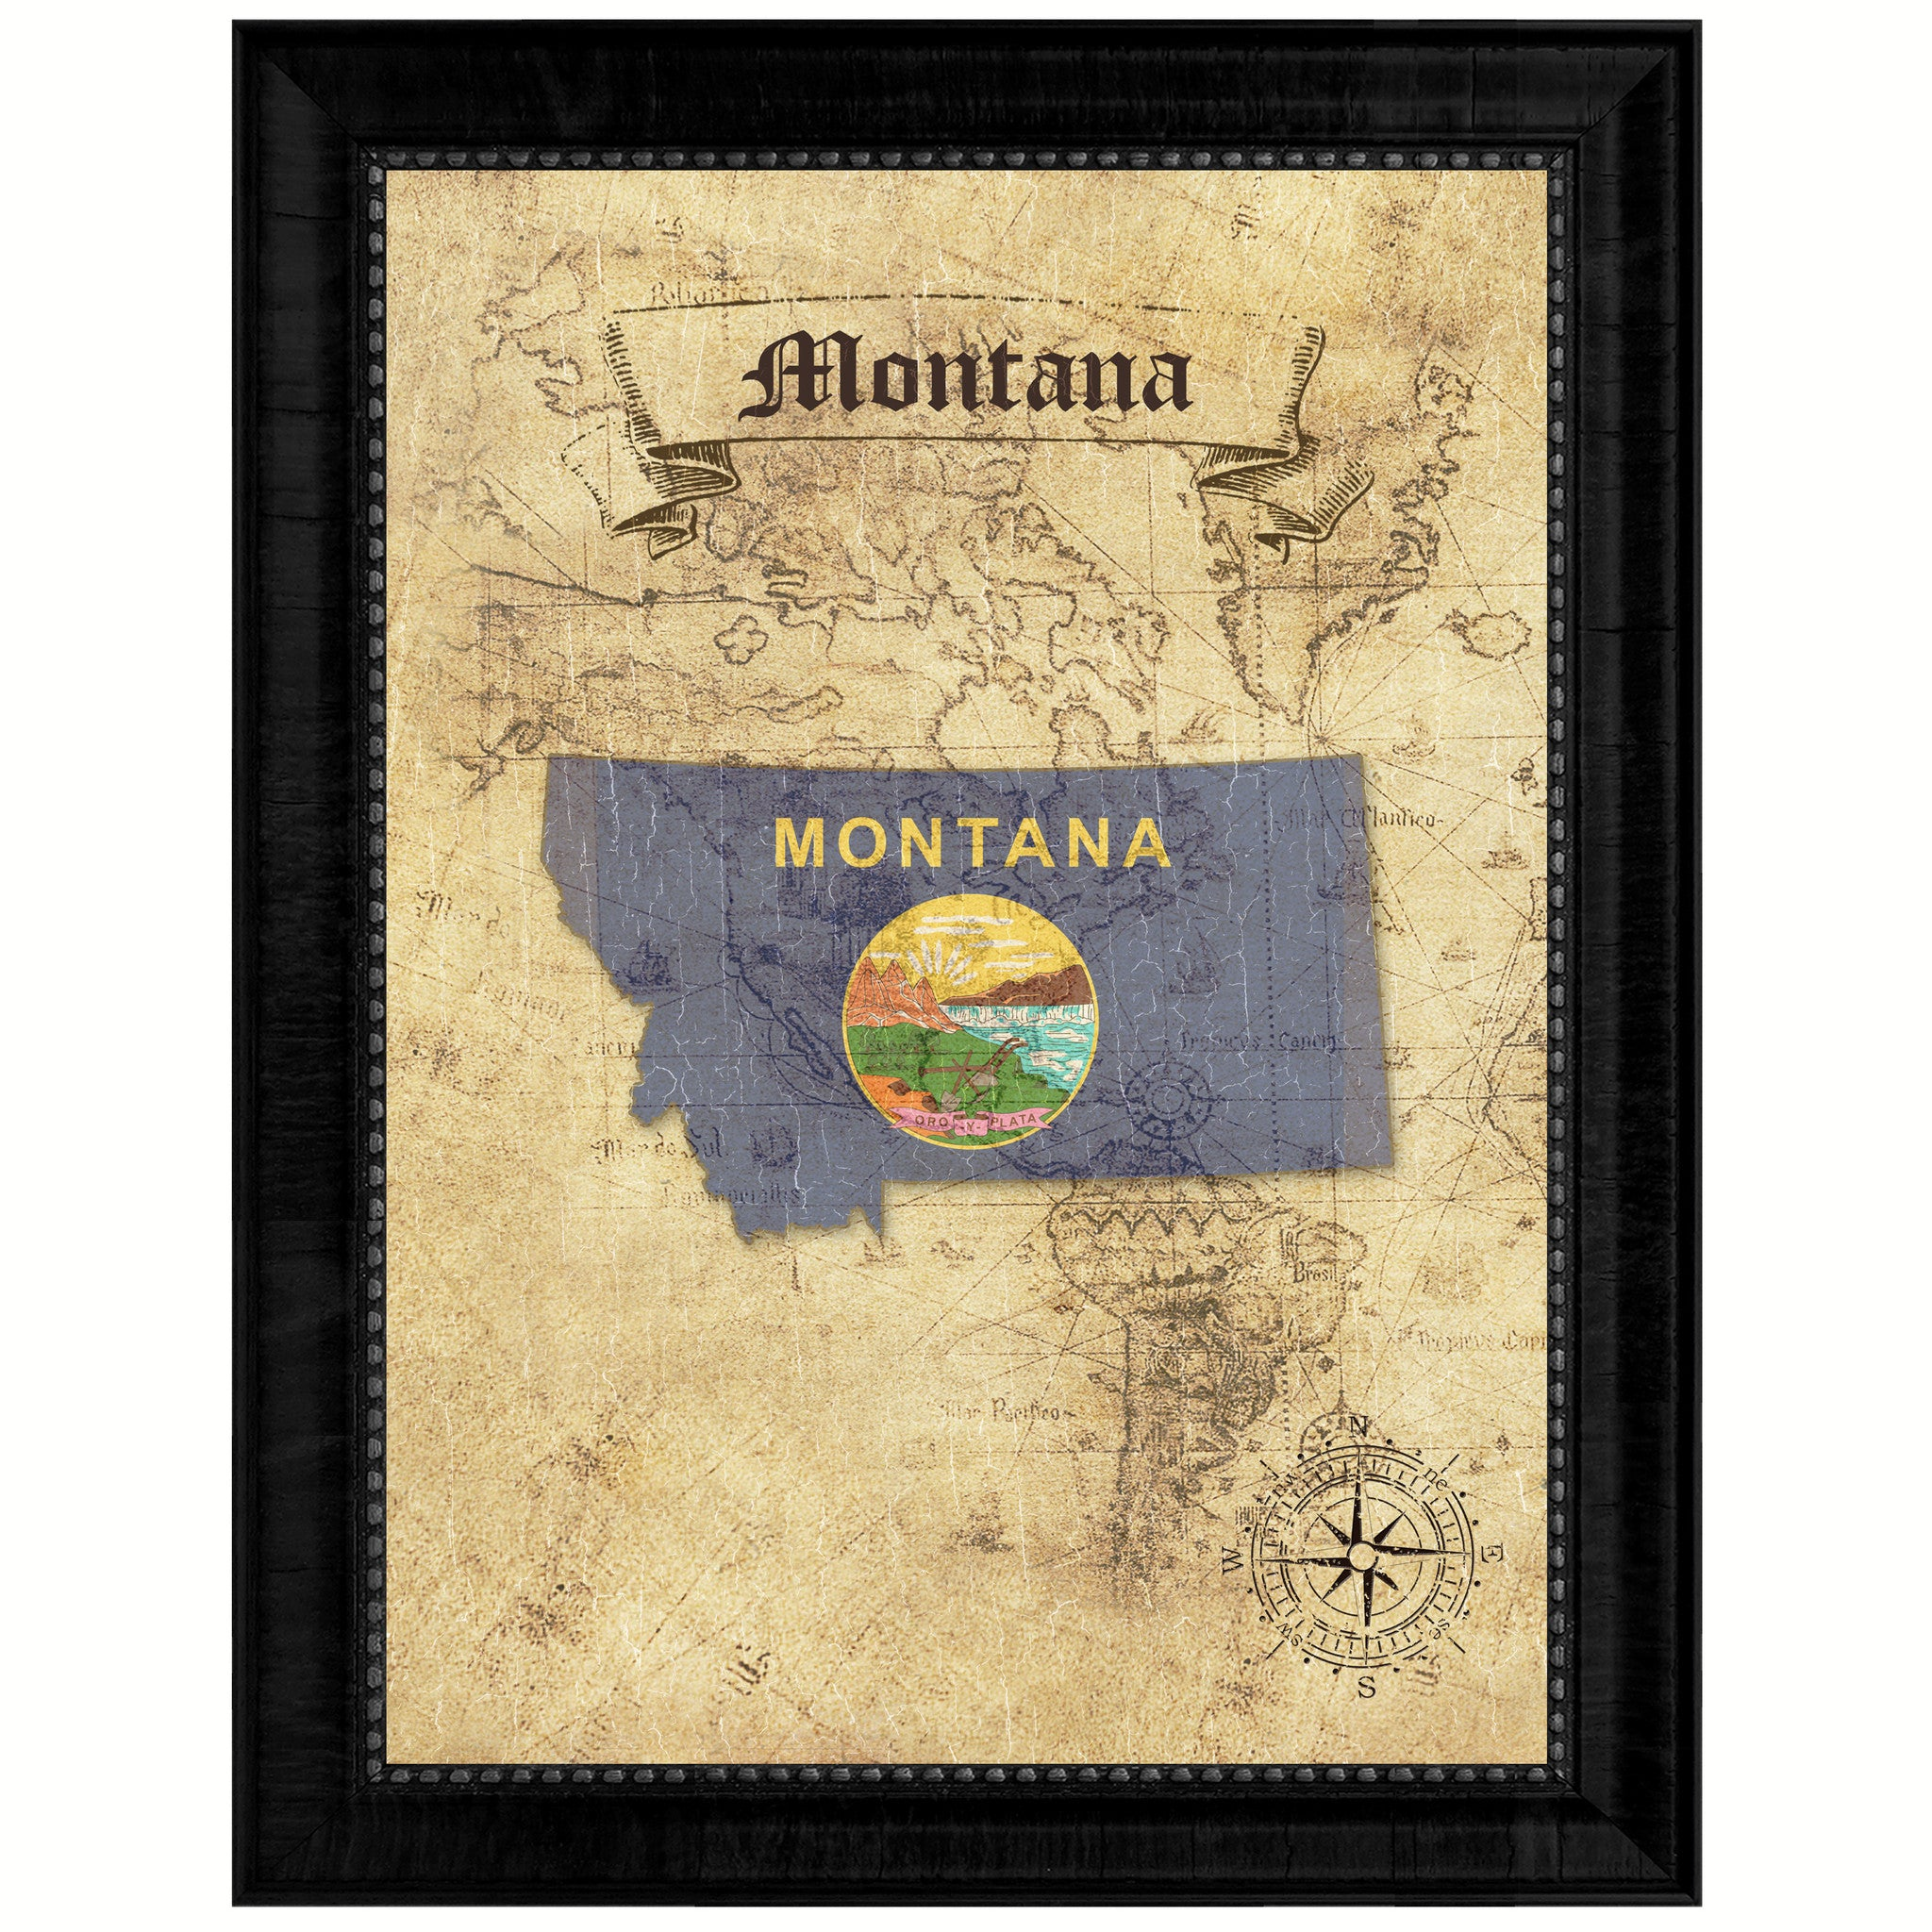 Montana State Vintage Map Gifts Home Decor Wall Art Office Decoration